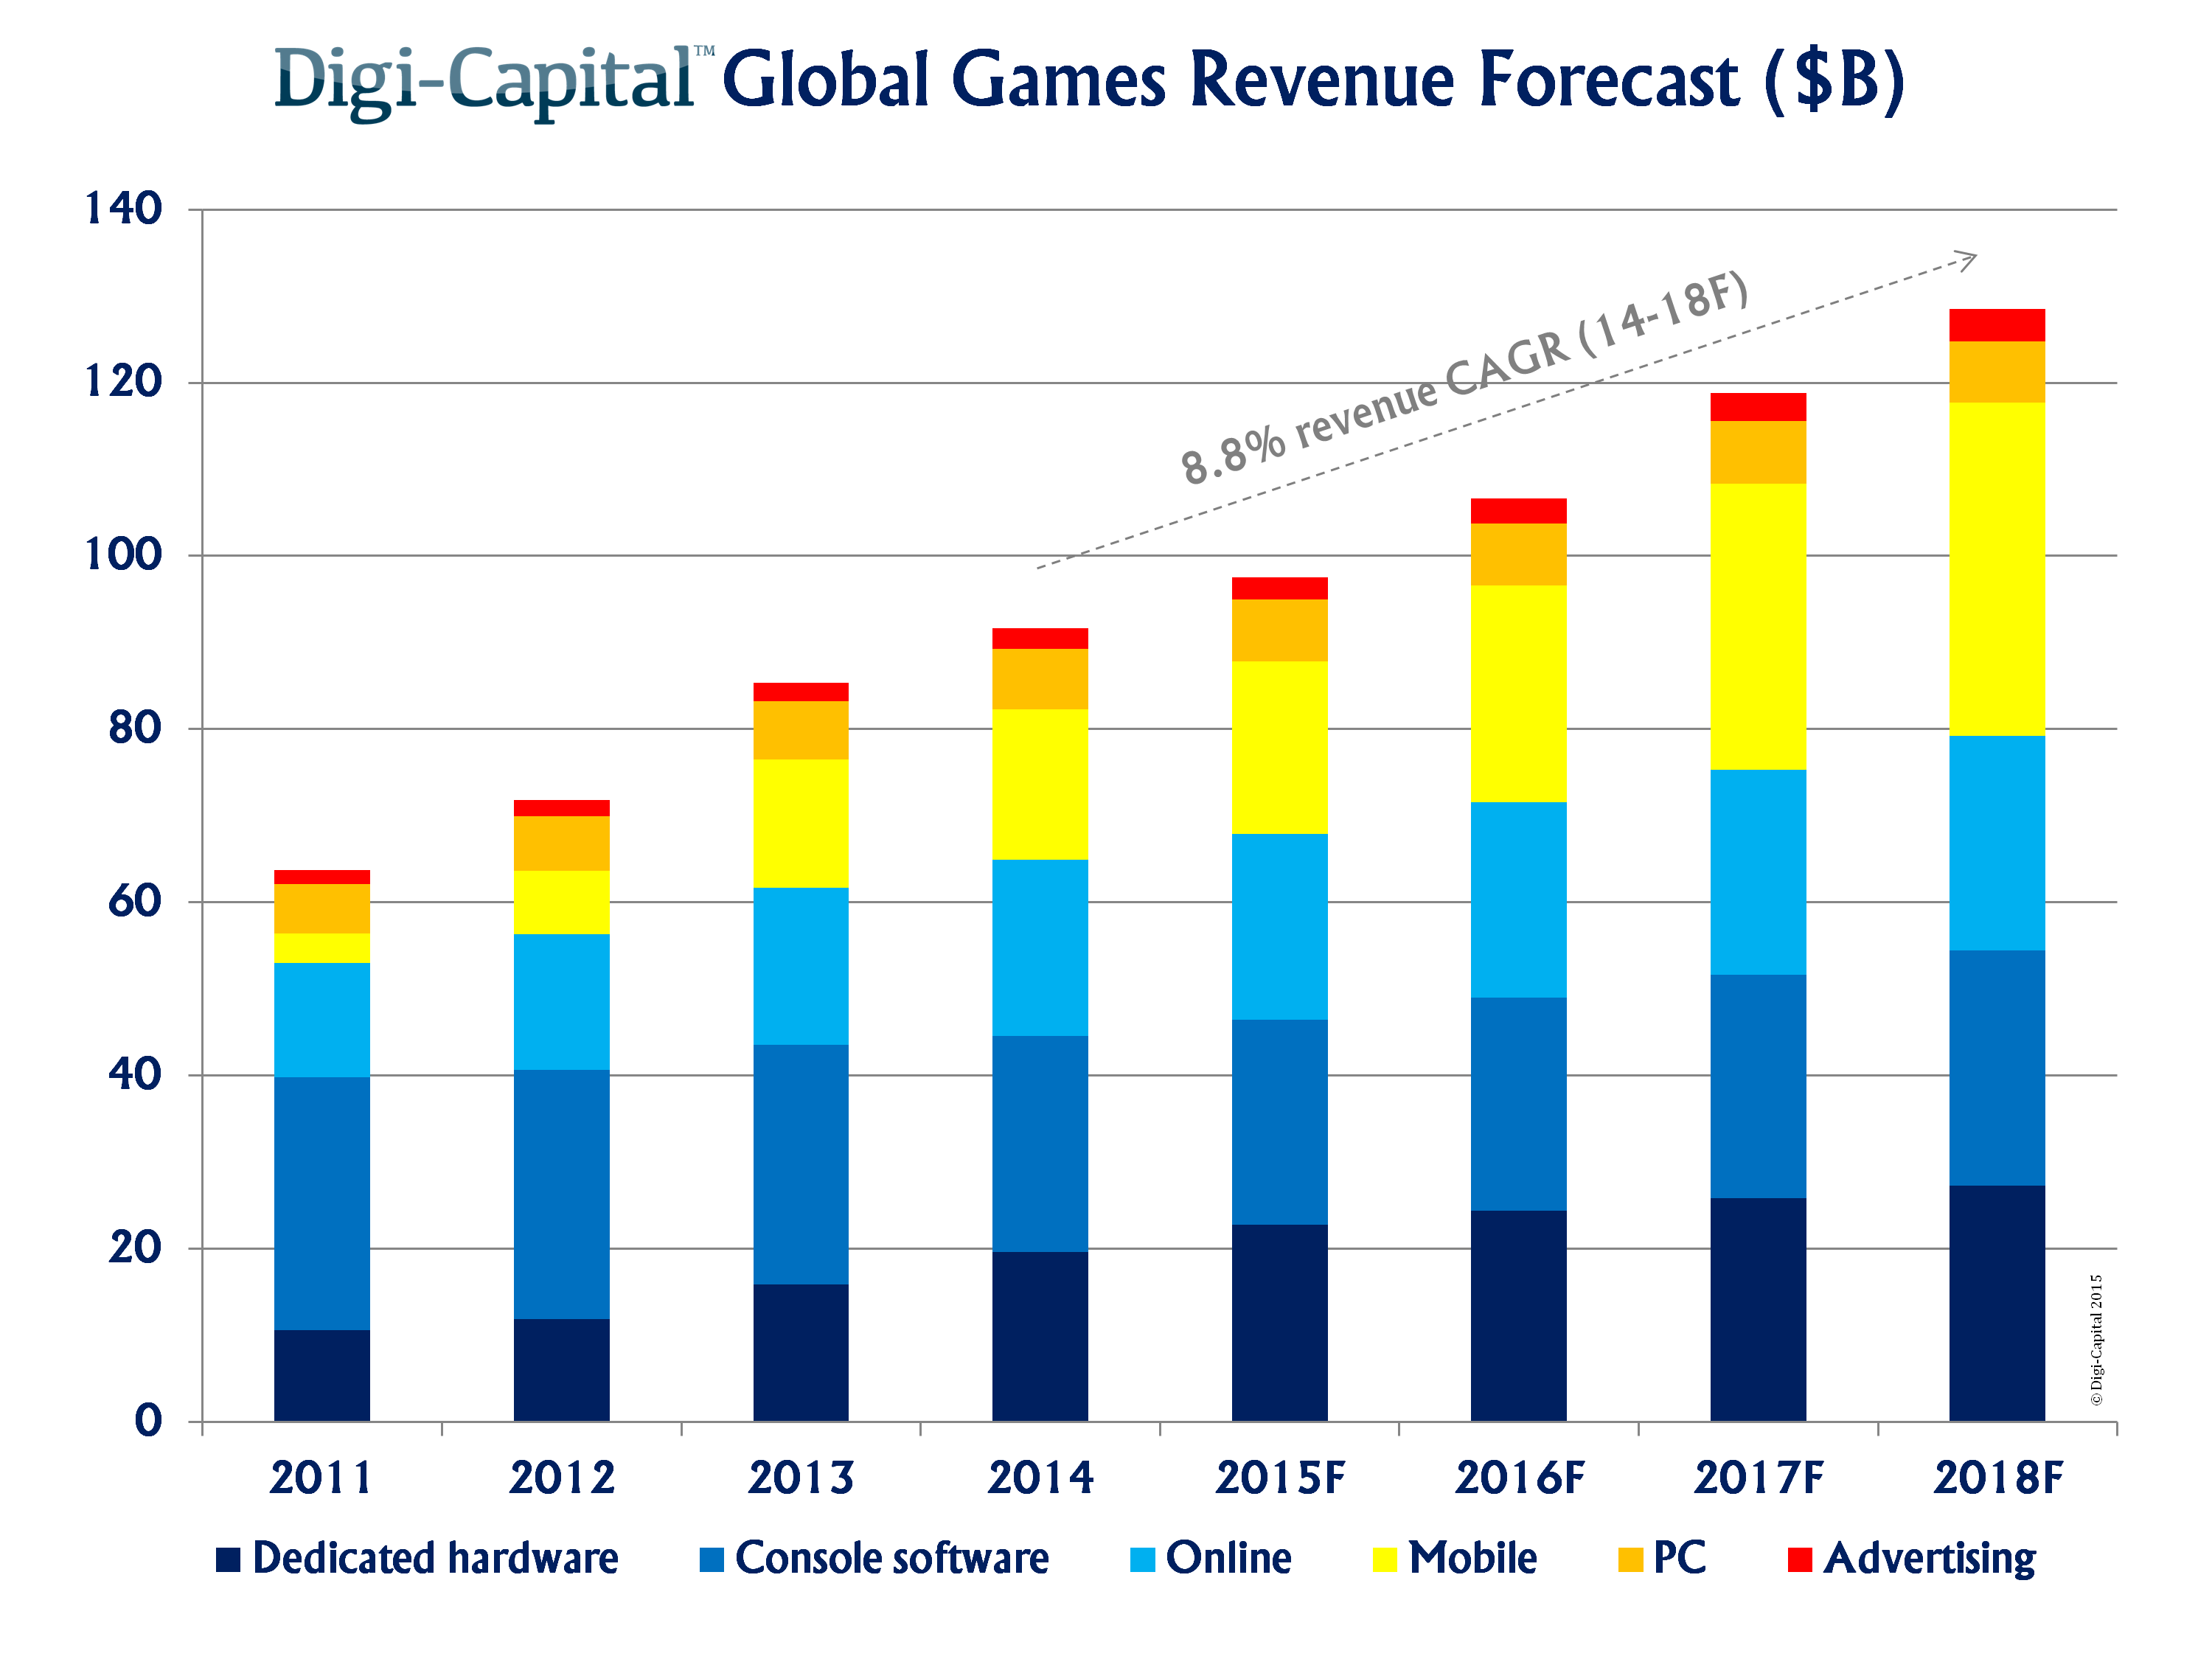 Game industry forecast shows solid growth